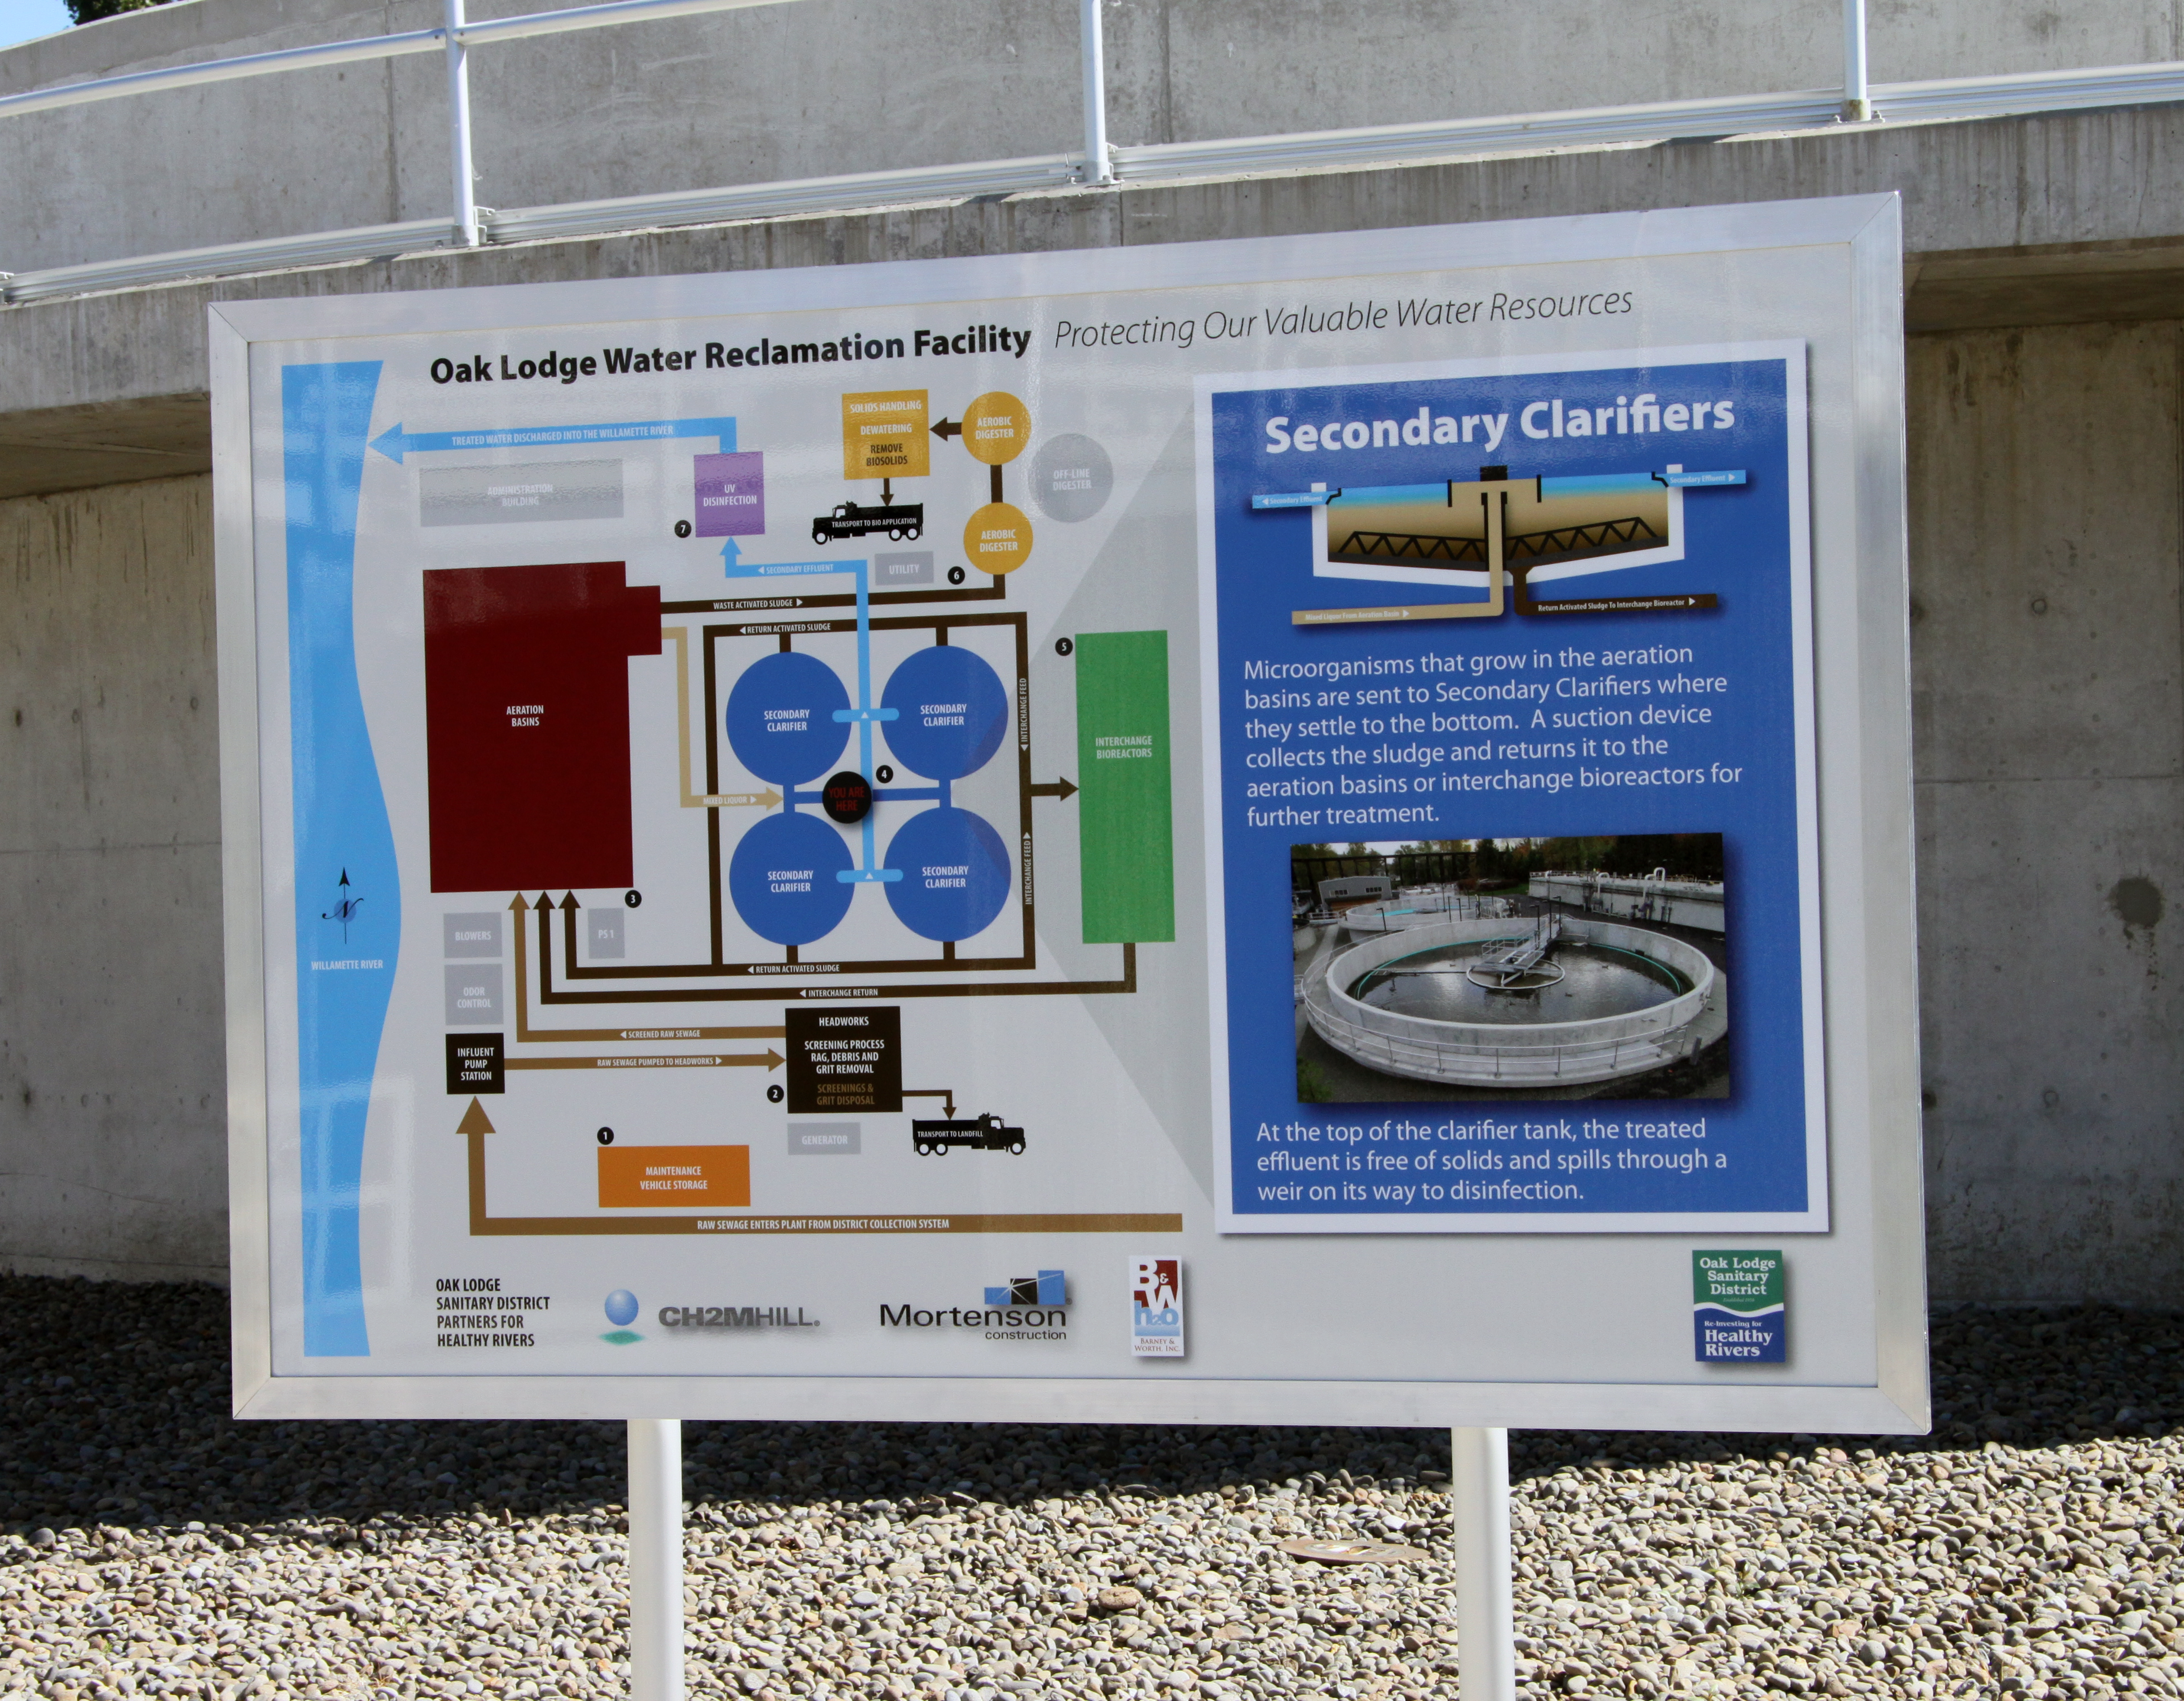 Water Reclamation Facility Interpretive Signage – Clairifier